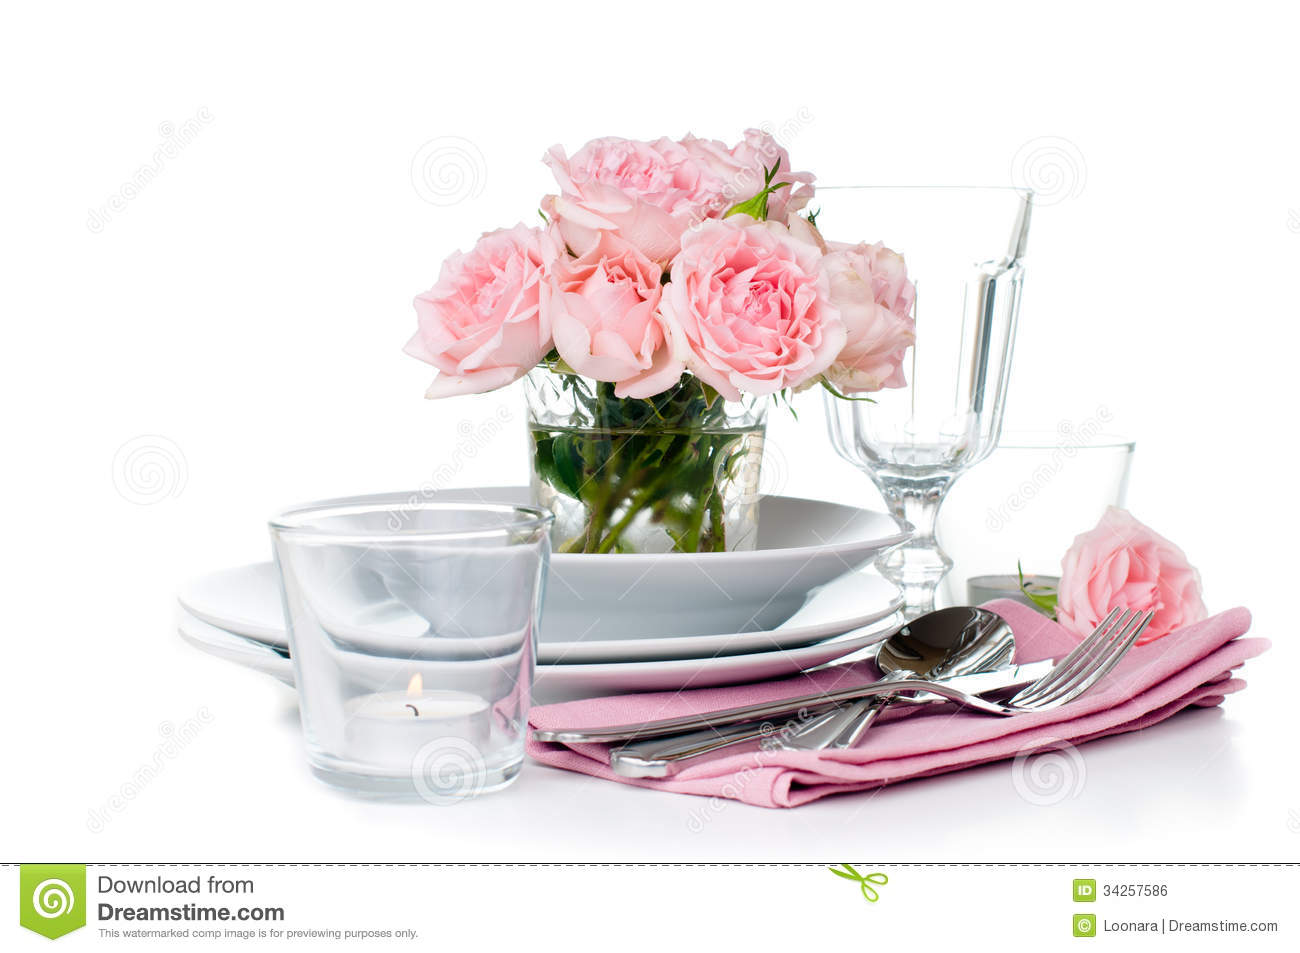 Festive Table Setting With Pink Roses Royalty Free Stock